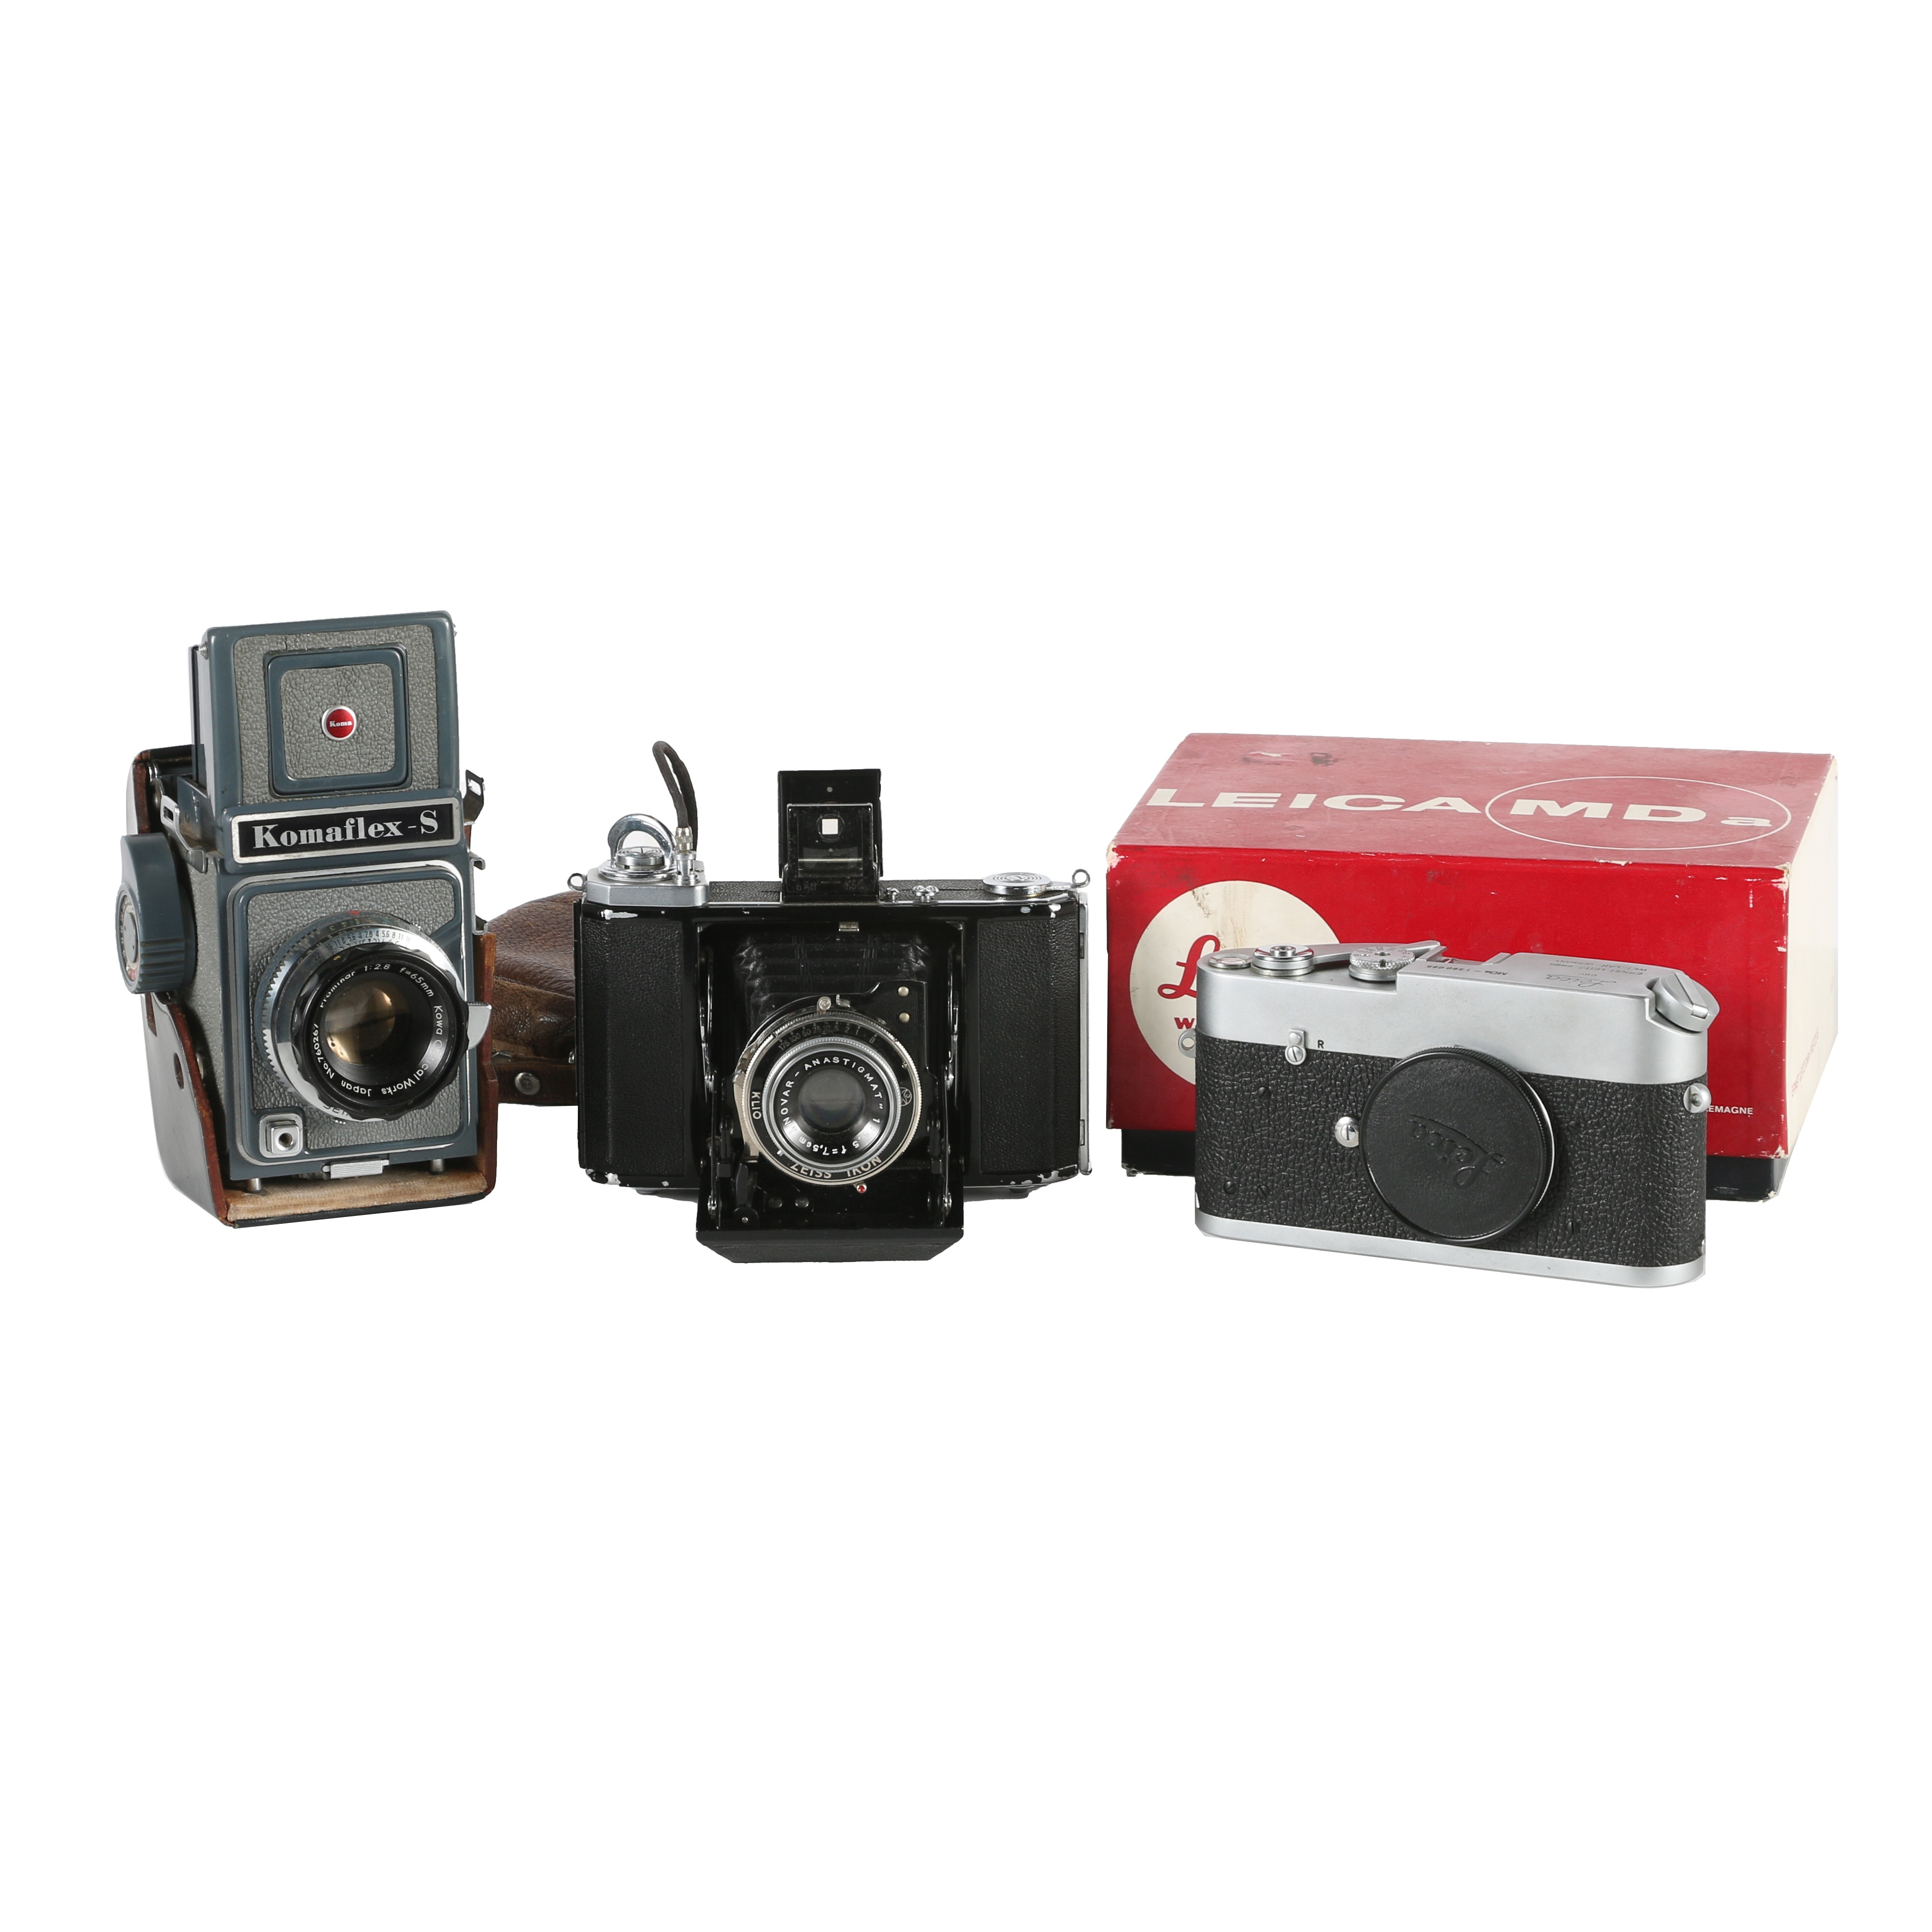 Komaflex, Leica, and Zeiss Ikona Vintage Cameras